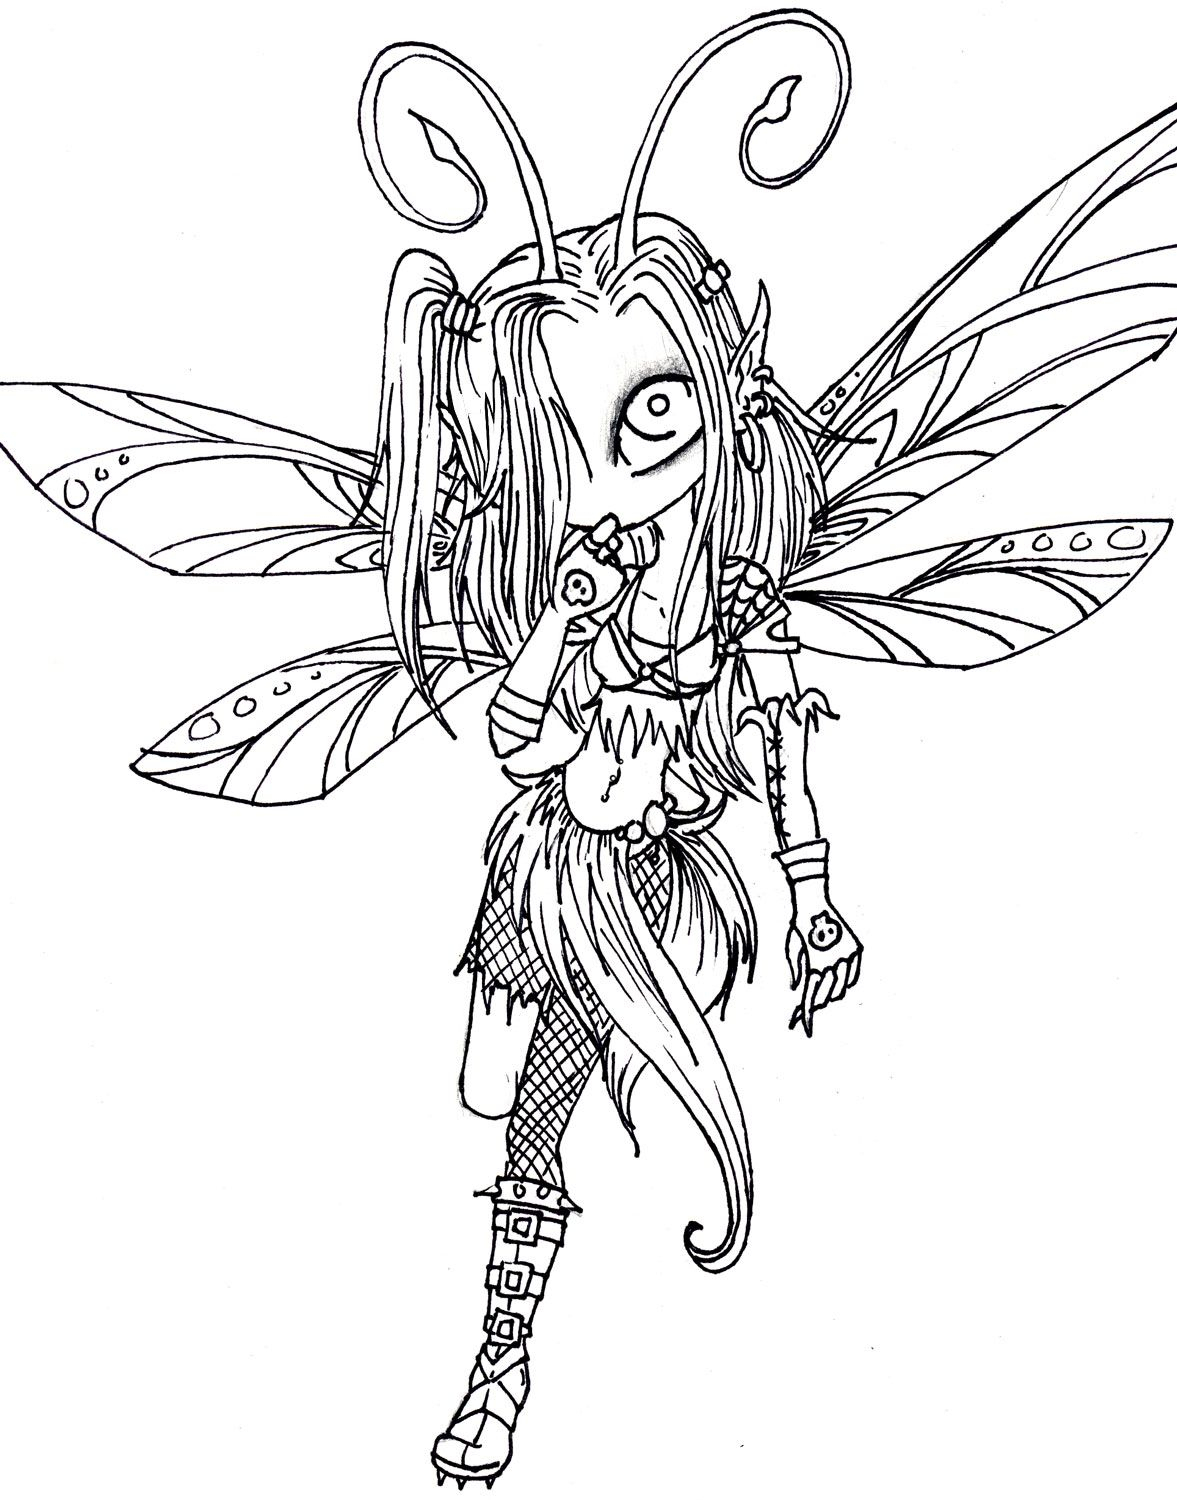 Pinjenjen S. On Art Patterns | Pinterest | Coloring Pages, Adult - Free Printable Coloring Pages For Adults Dark Fairies